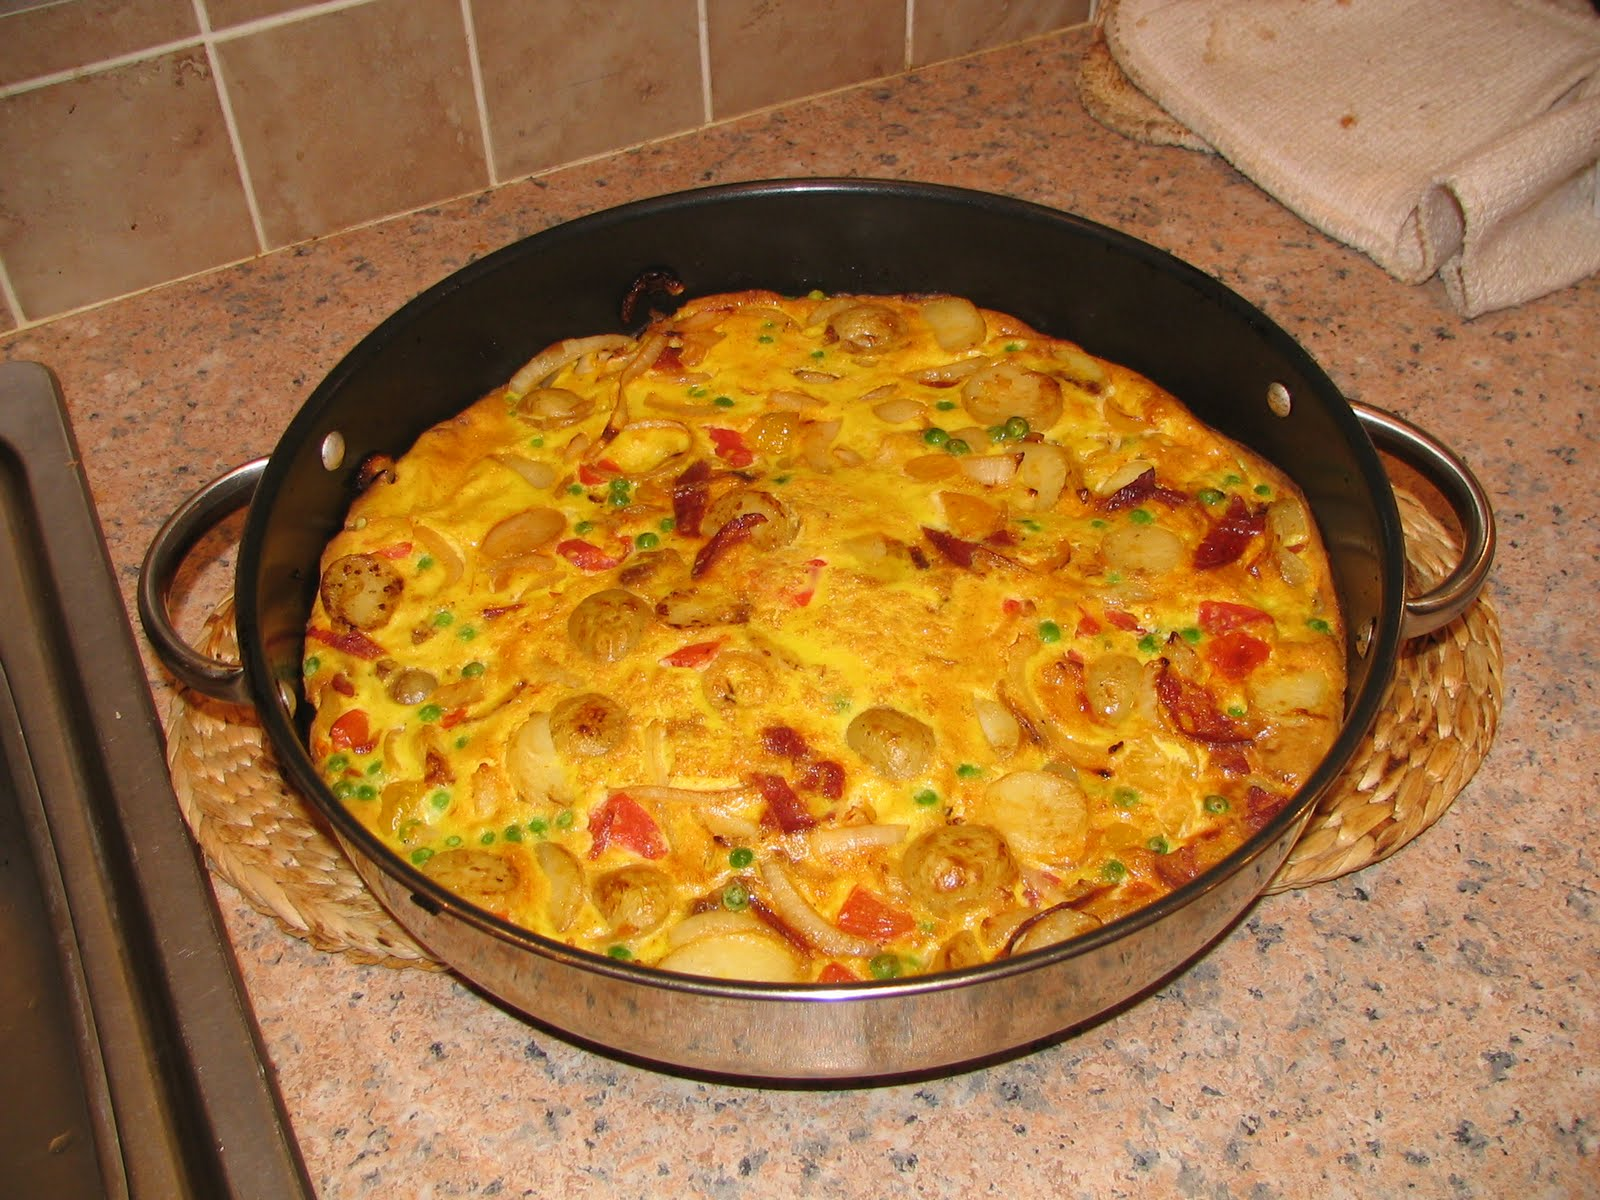 Mark's Veg Plot: Spanish-esque omelette